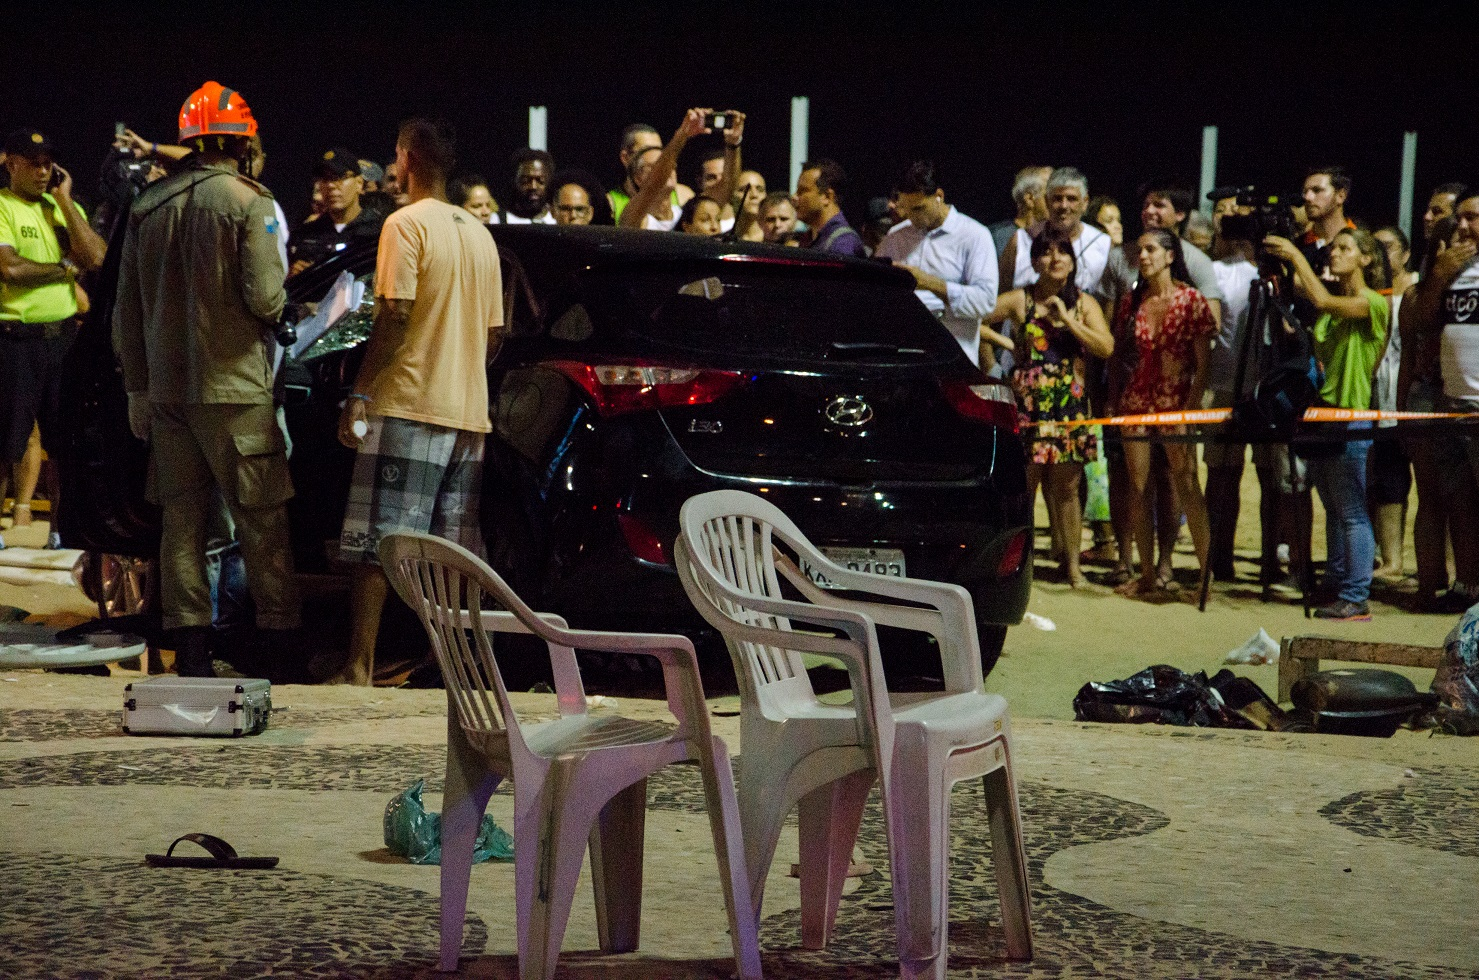 O carro do motorista que invadiu a praia de Copacabana e atropelou 18 pessoas. Foto Vanessa Ataliba/Brazil Photo Press